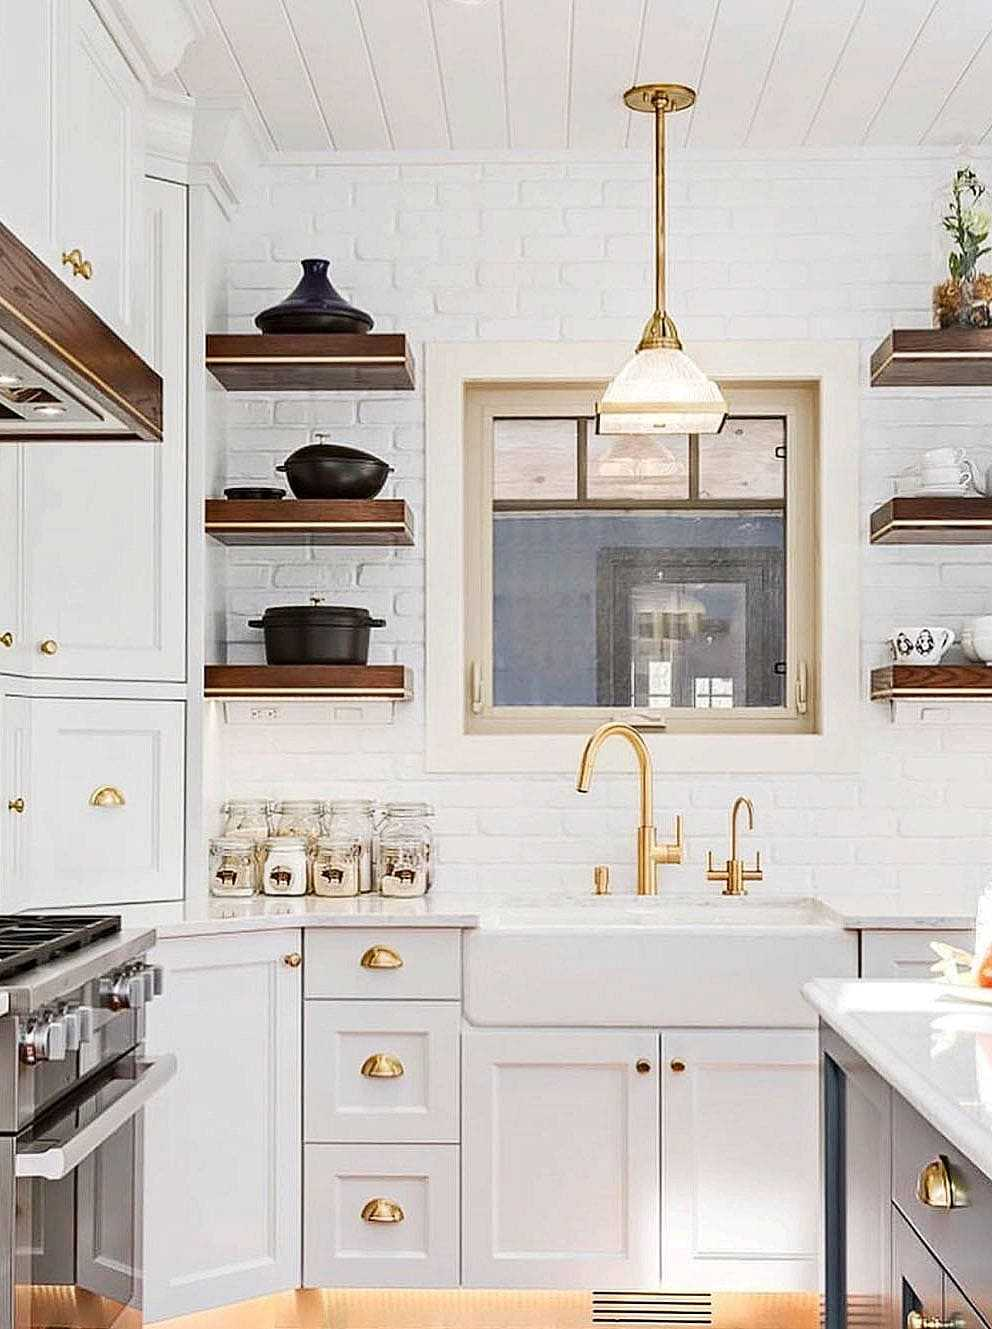 Cute, Useful And Small Kitchen Design ideas. - Women World Blog